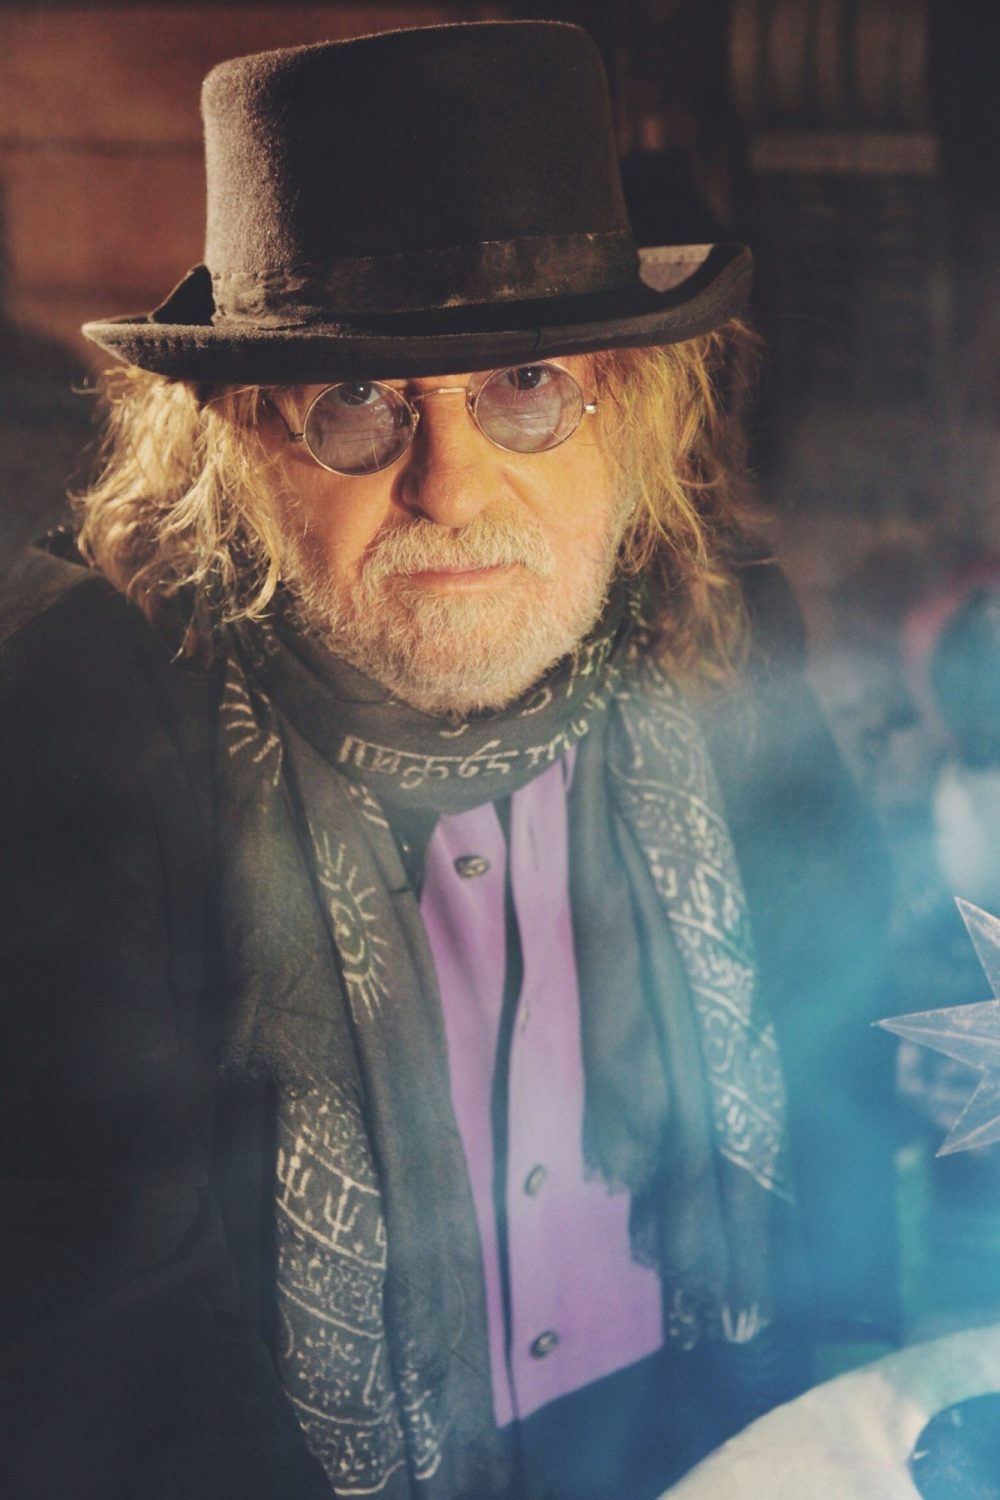 Ray Wylie Hubbard to headline Hill Country on Jul. 13, talks book, songwriting and new music